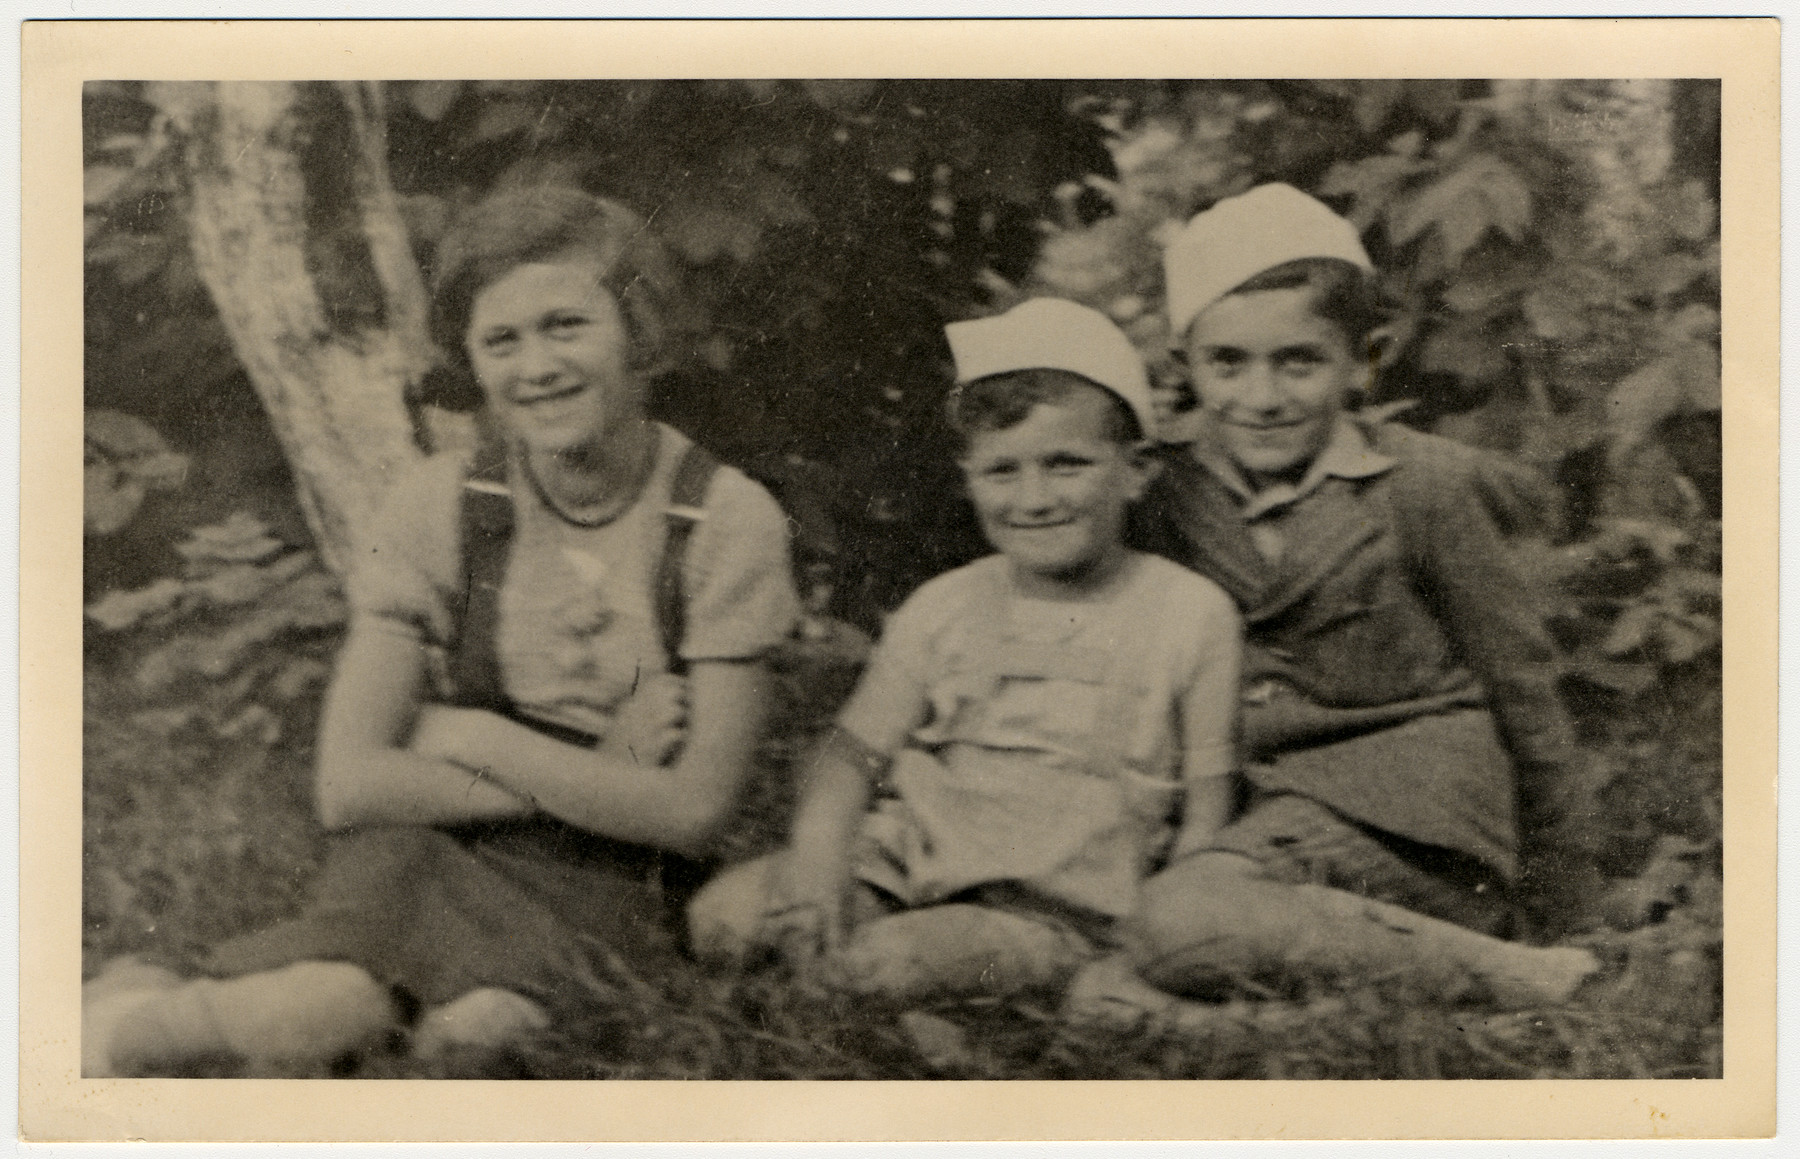 Close-up portrait of three Jewish children in Drohobycz.  Pictured on the far right is Paul Lustig.  [Next to him may be his cousins.]